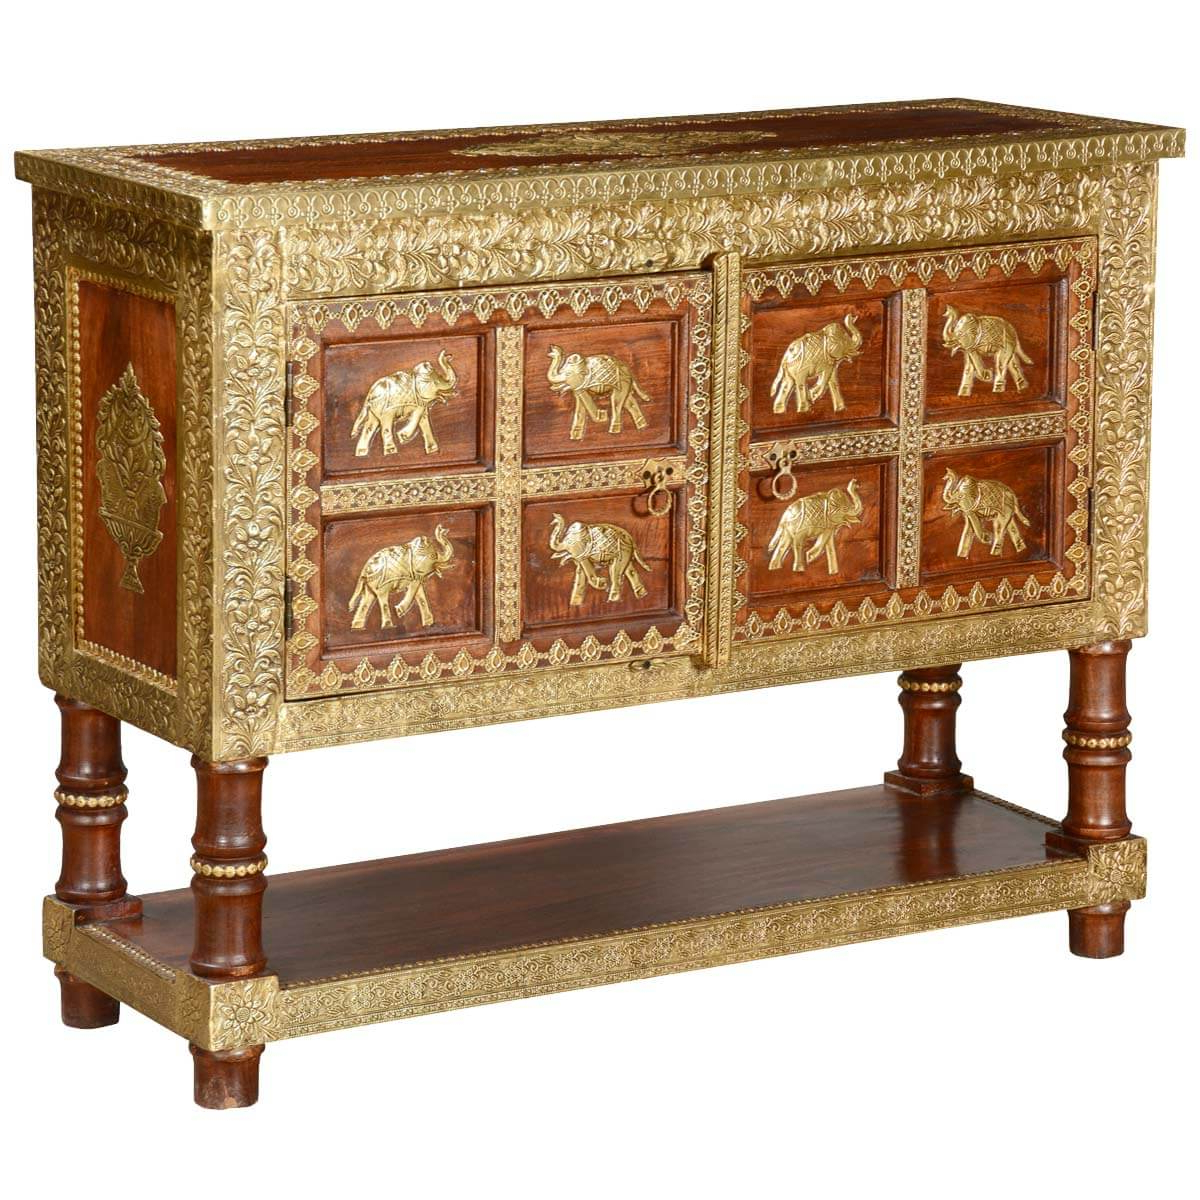 Orange Inlay Console Tables Within Well Liked 8 Golden Elephants Mango Wood & Brass Inlay Console Table Chest (View 15 of 20)